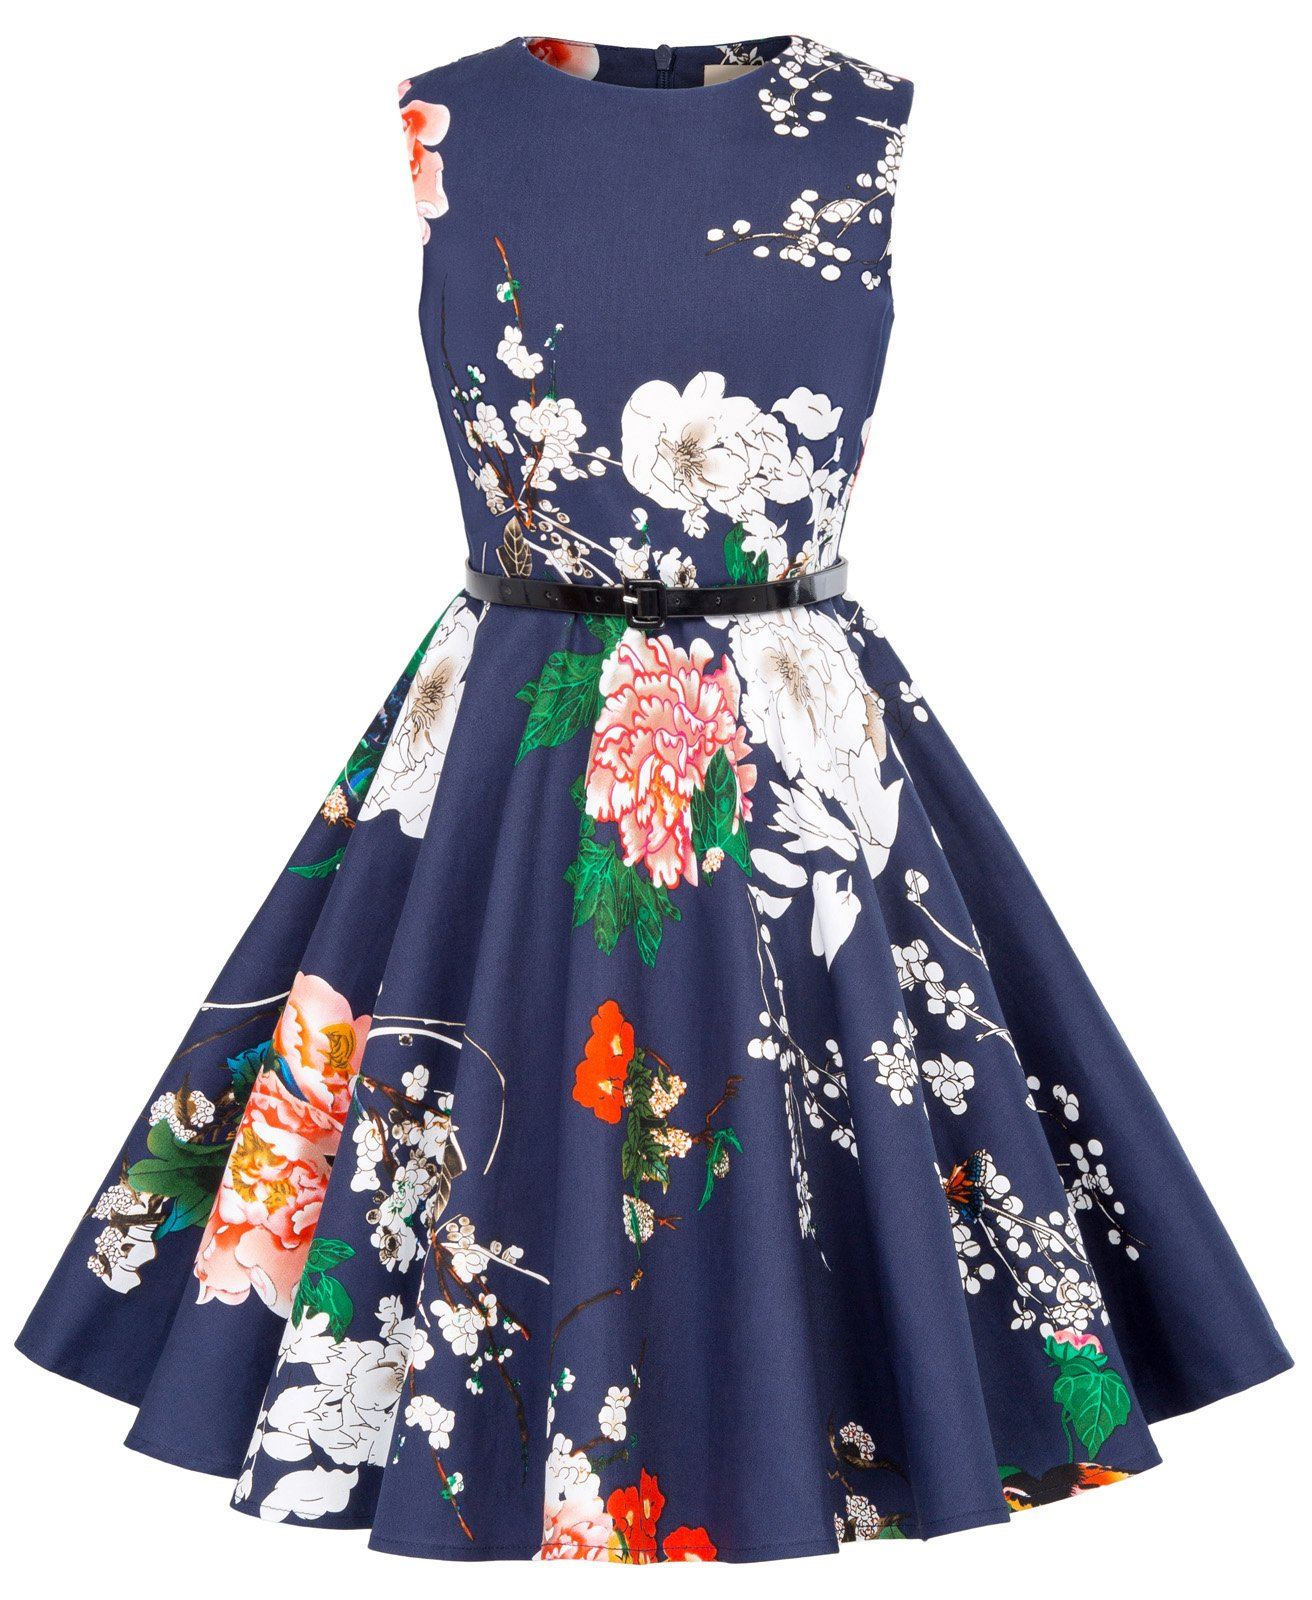 7f5c2c30f357 Best Rated in Girls  Casual Dresses   Helpful Customer Reviews ...